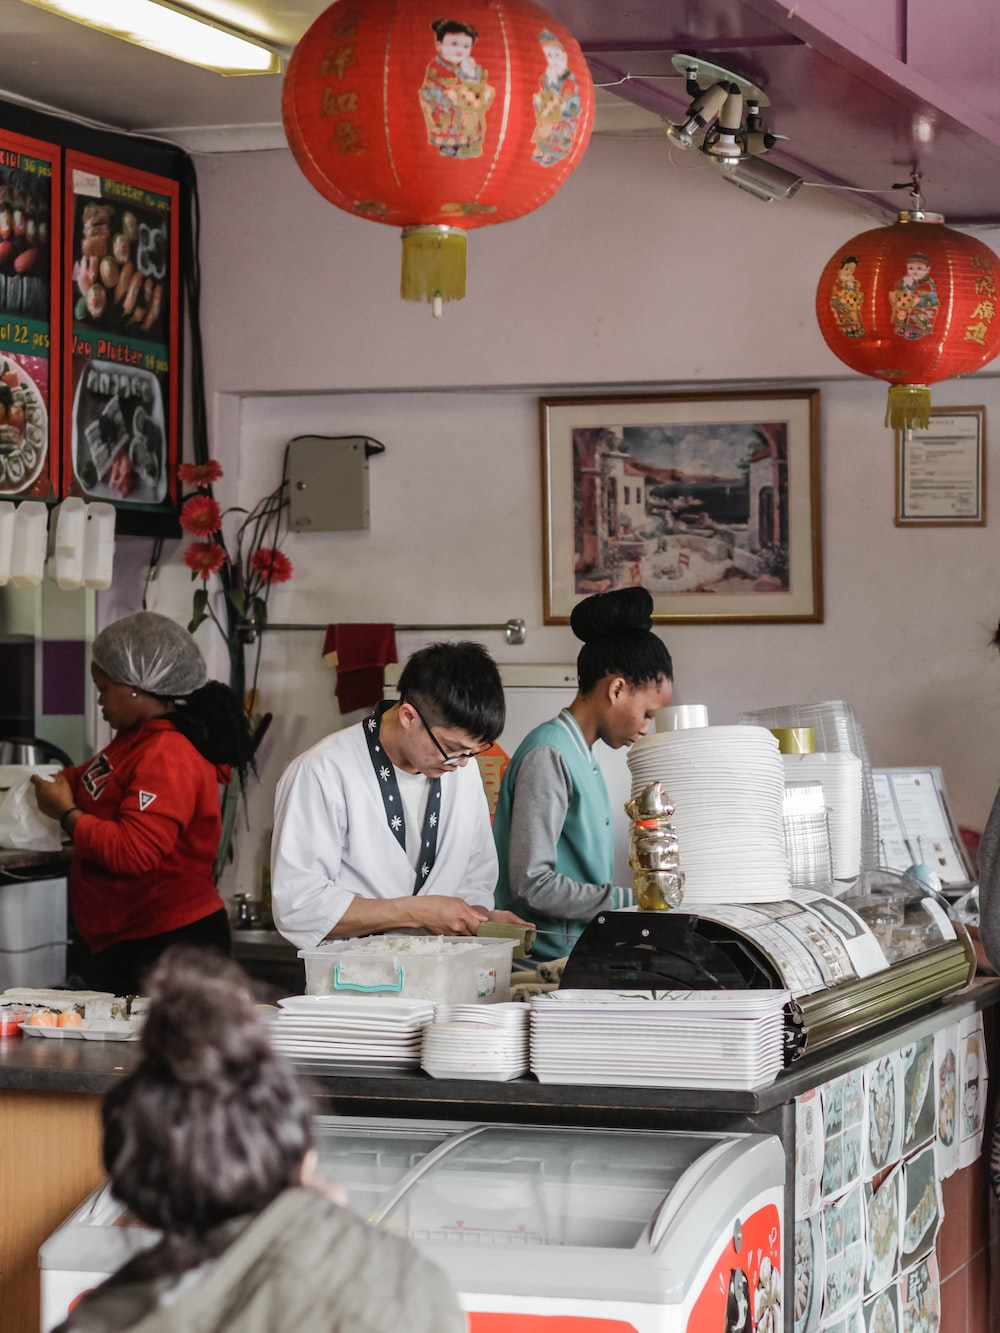 people behind counter table